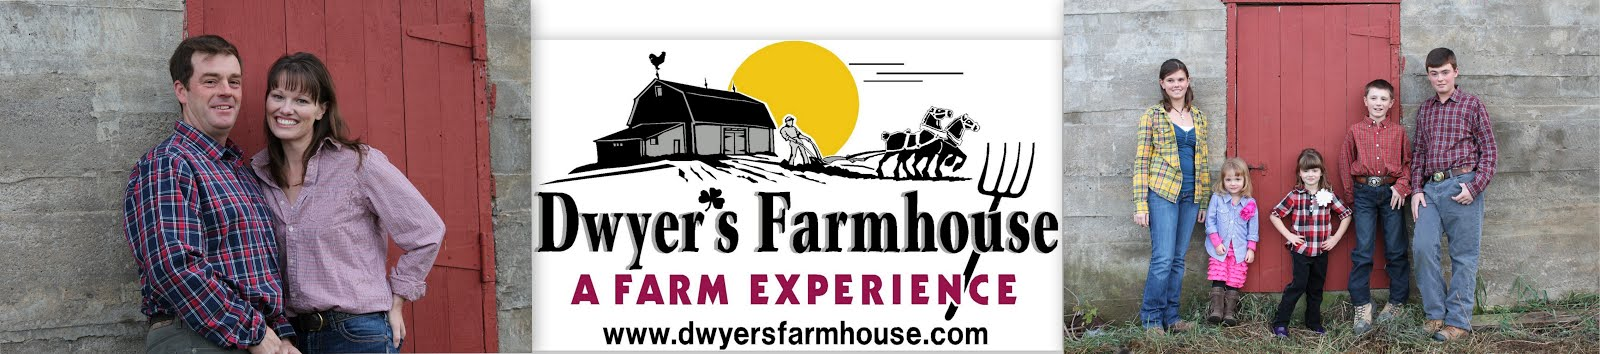 Dwyer&#39;s Farmhouse